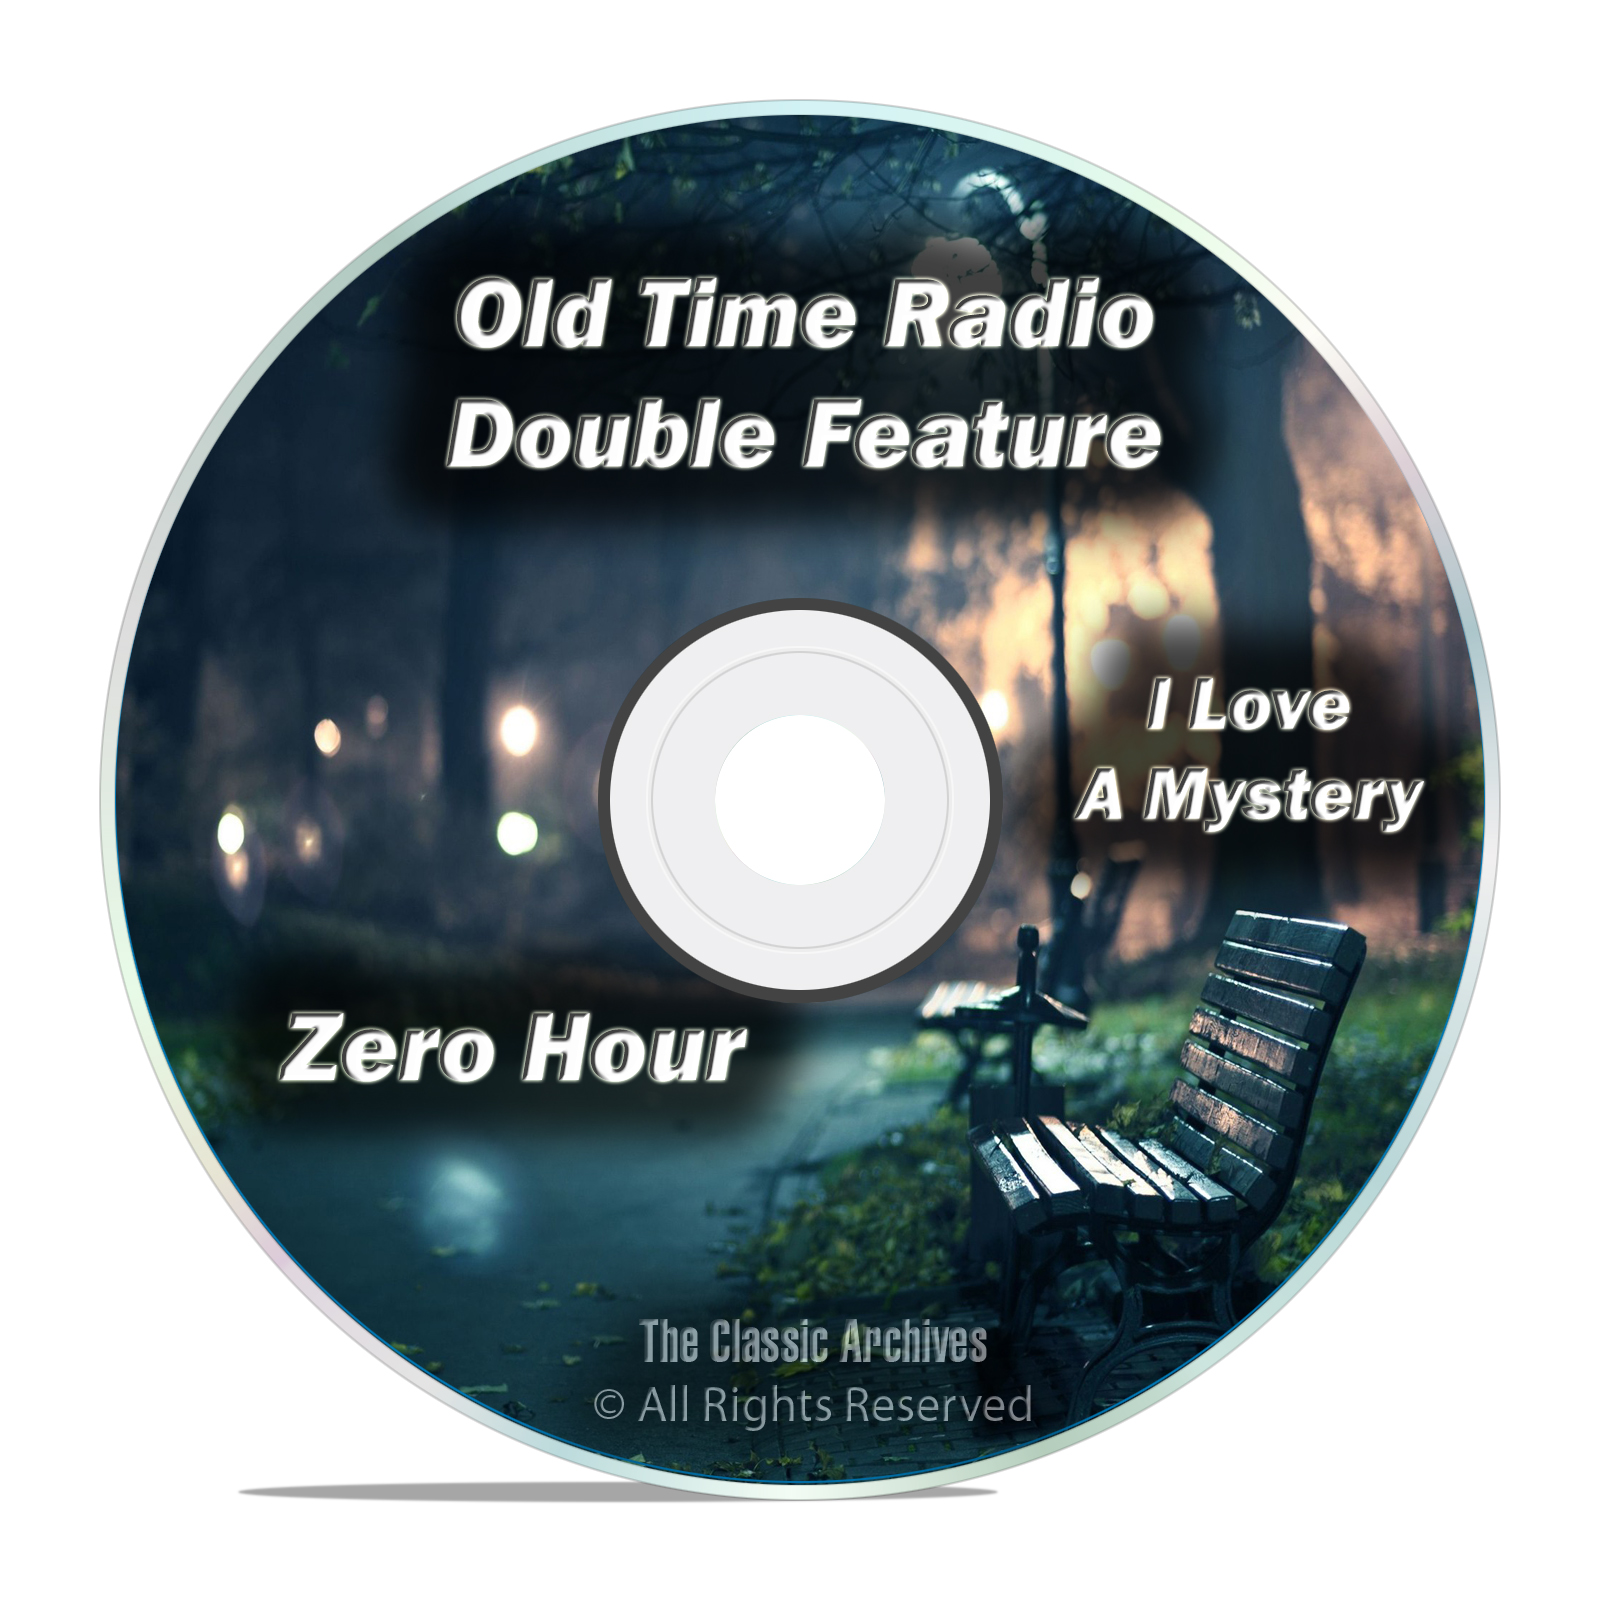 Zero Hour, I Love a Mystery, All Known 701 Old Time Radio Shows MP3 DVD